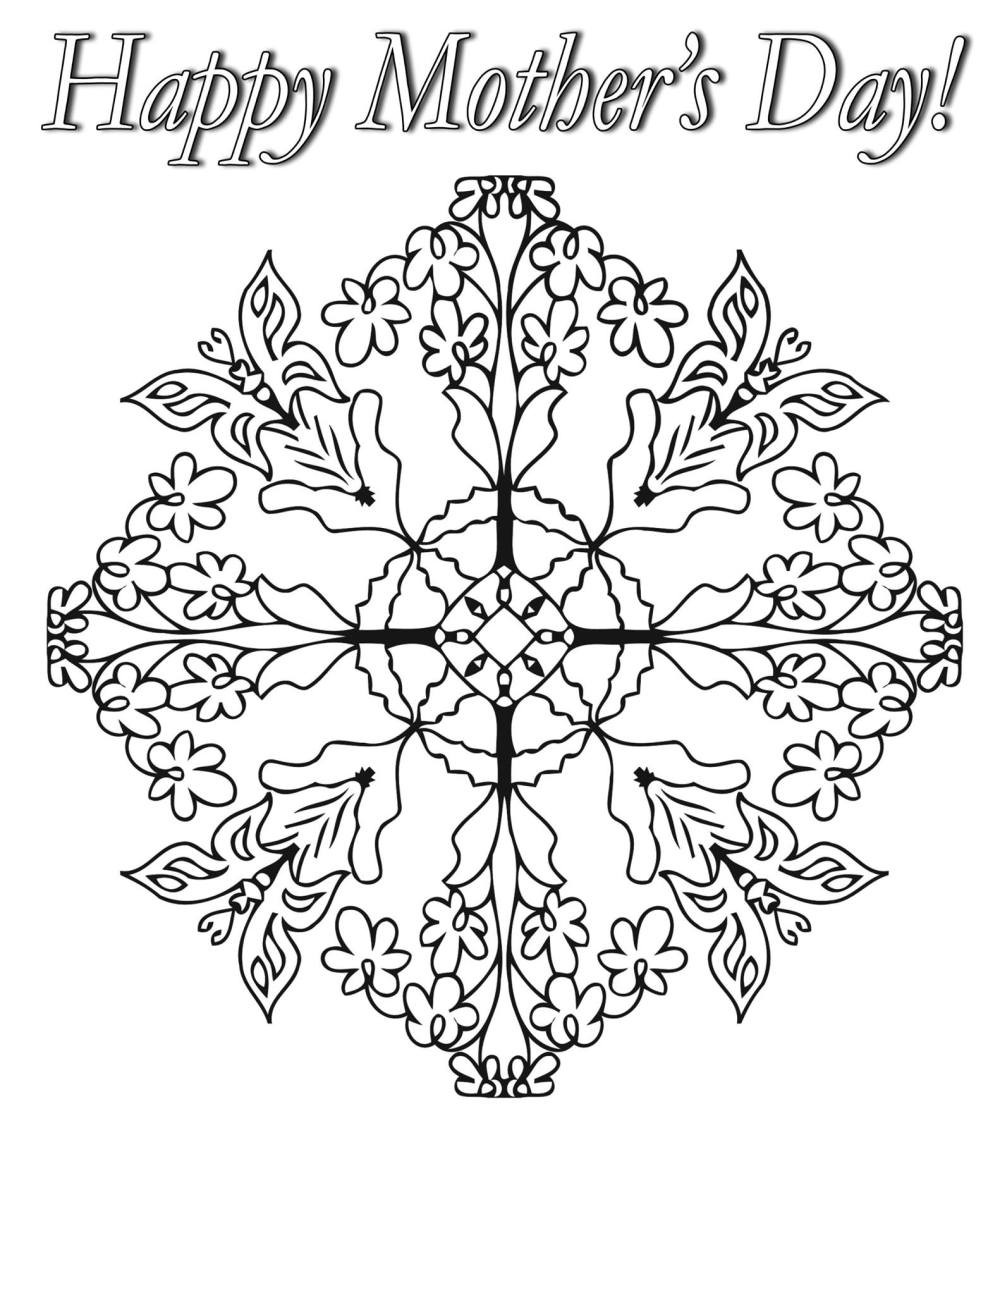 Mothers Day Coloring Pages For Adults  Southwest Coloring Pages Free Coloring Home